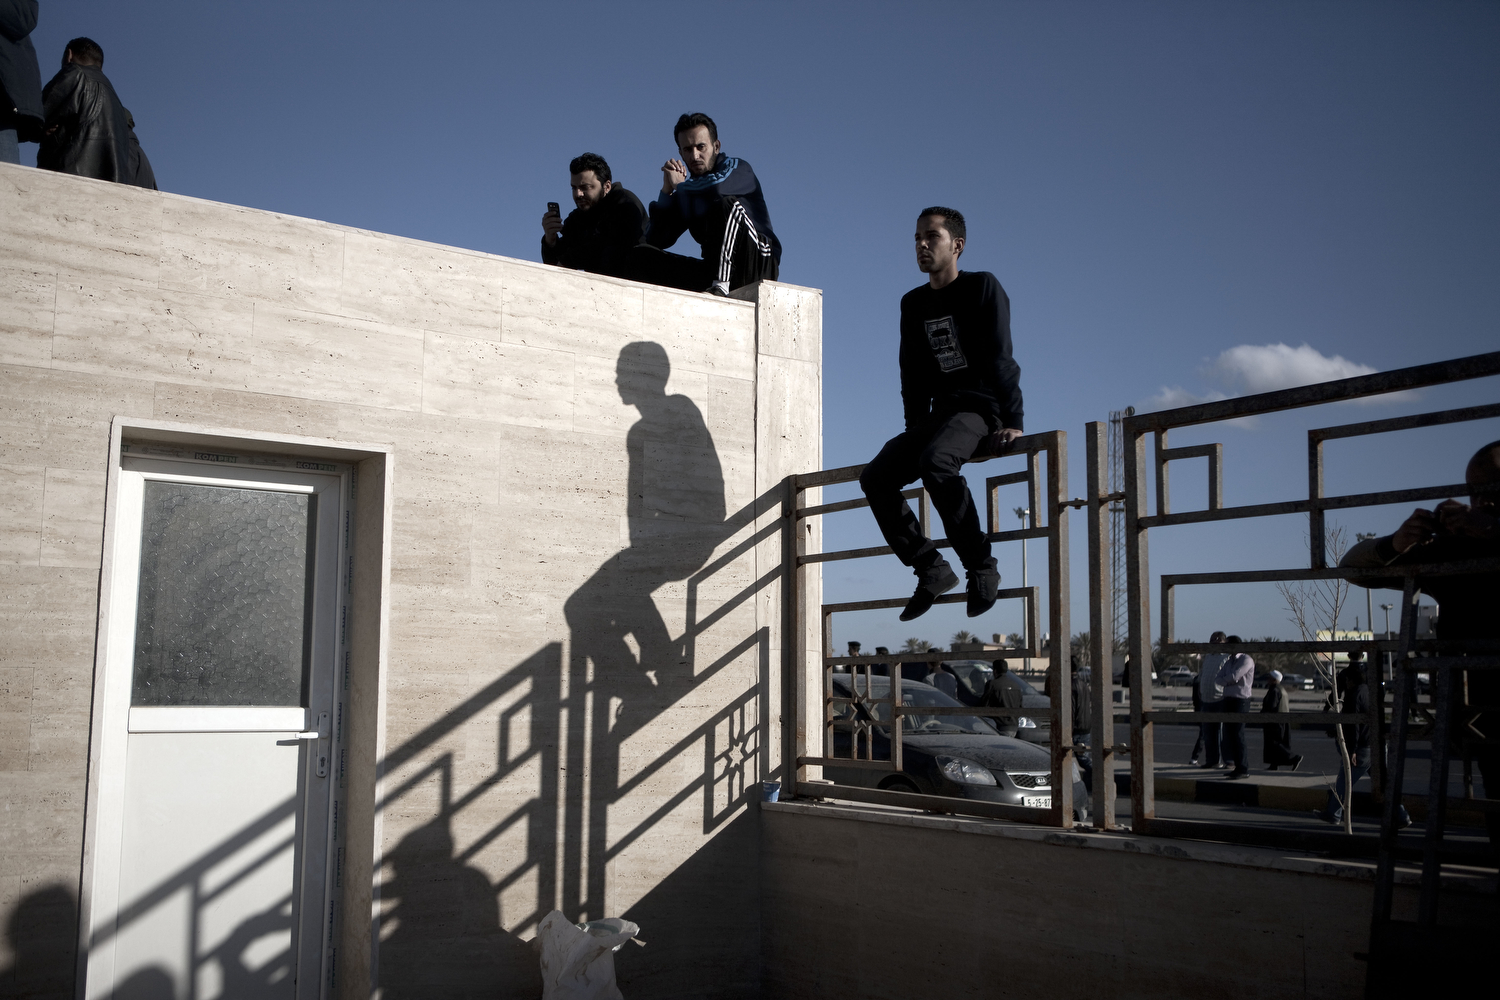 Libyans waiting for bodies, March 20, 2011.